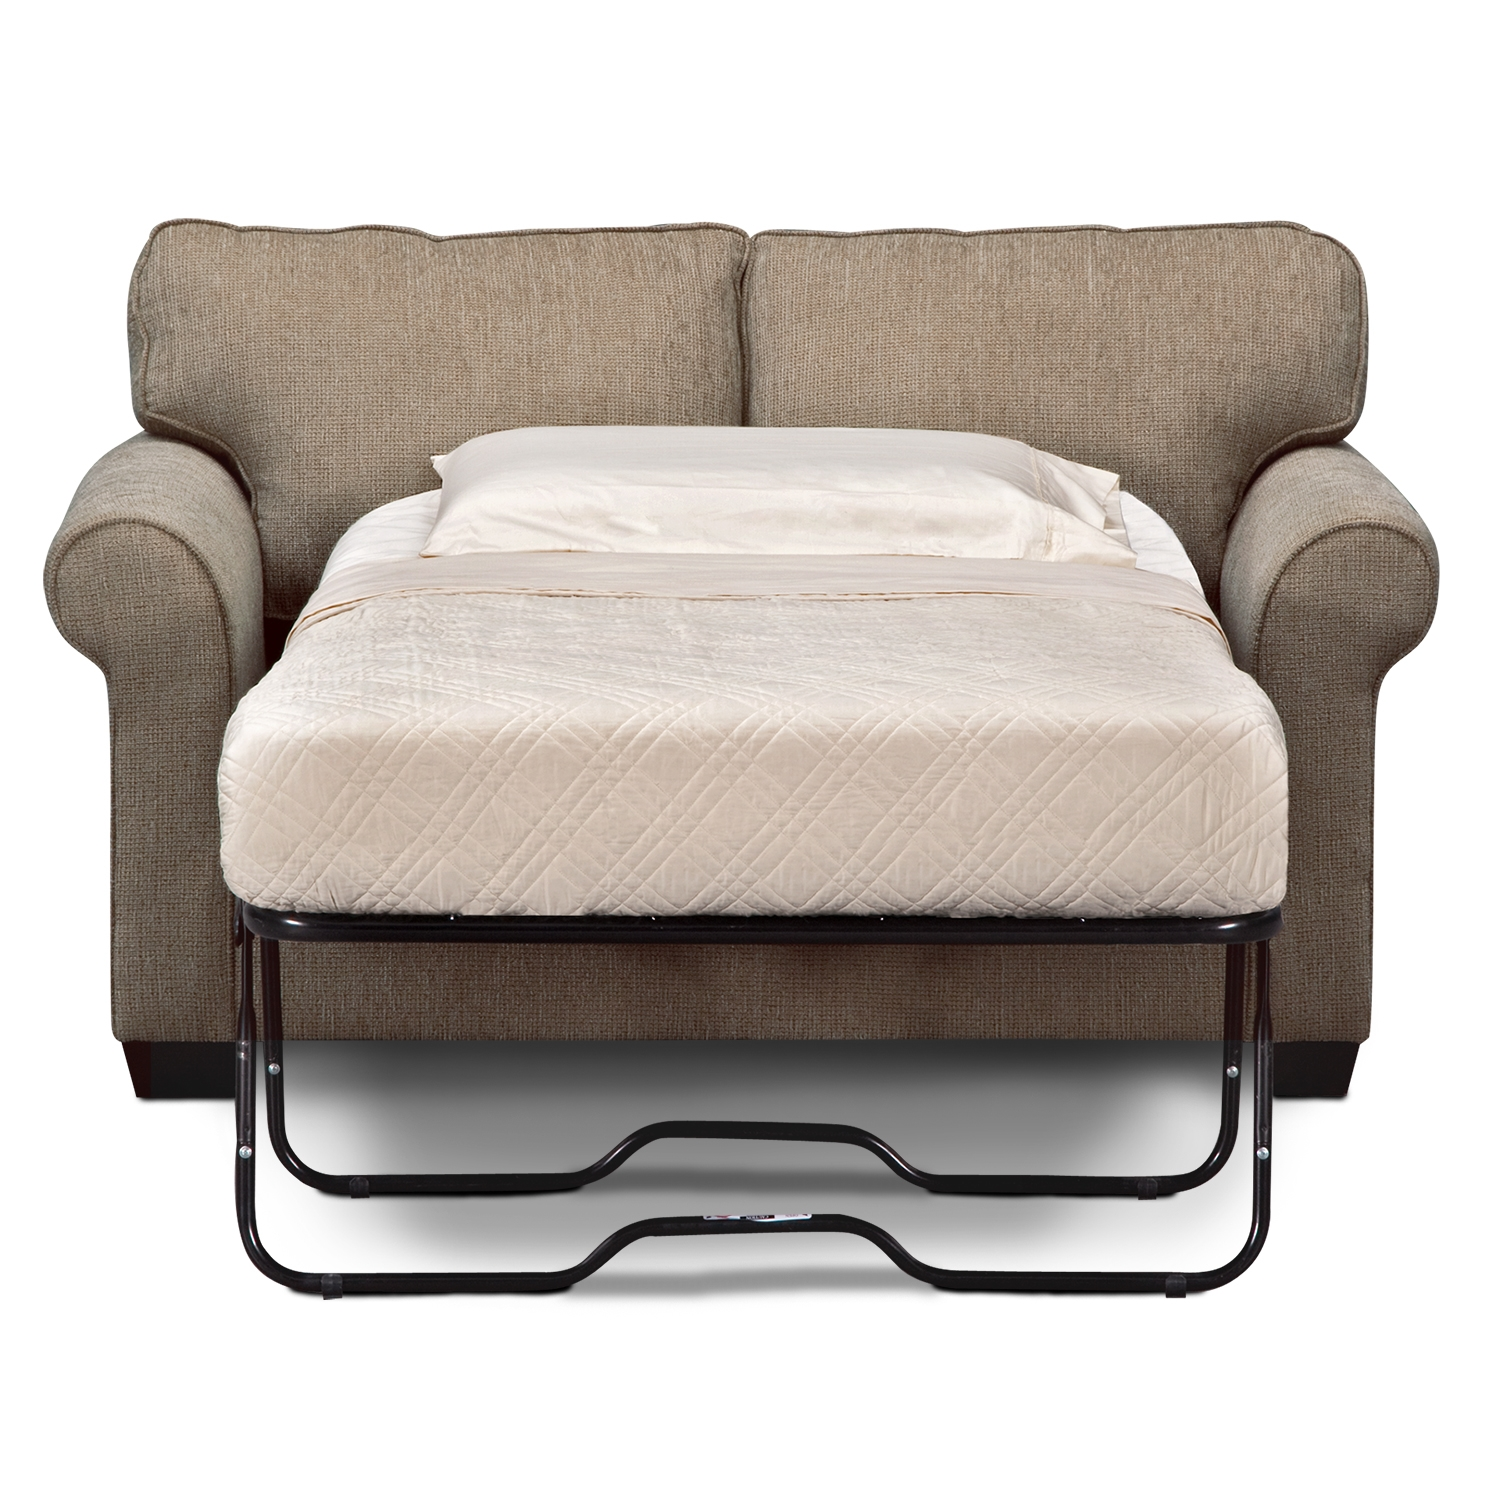 Image of: Chair Bed Twin Sleeper Image